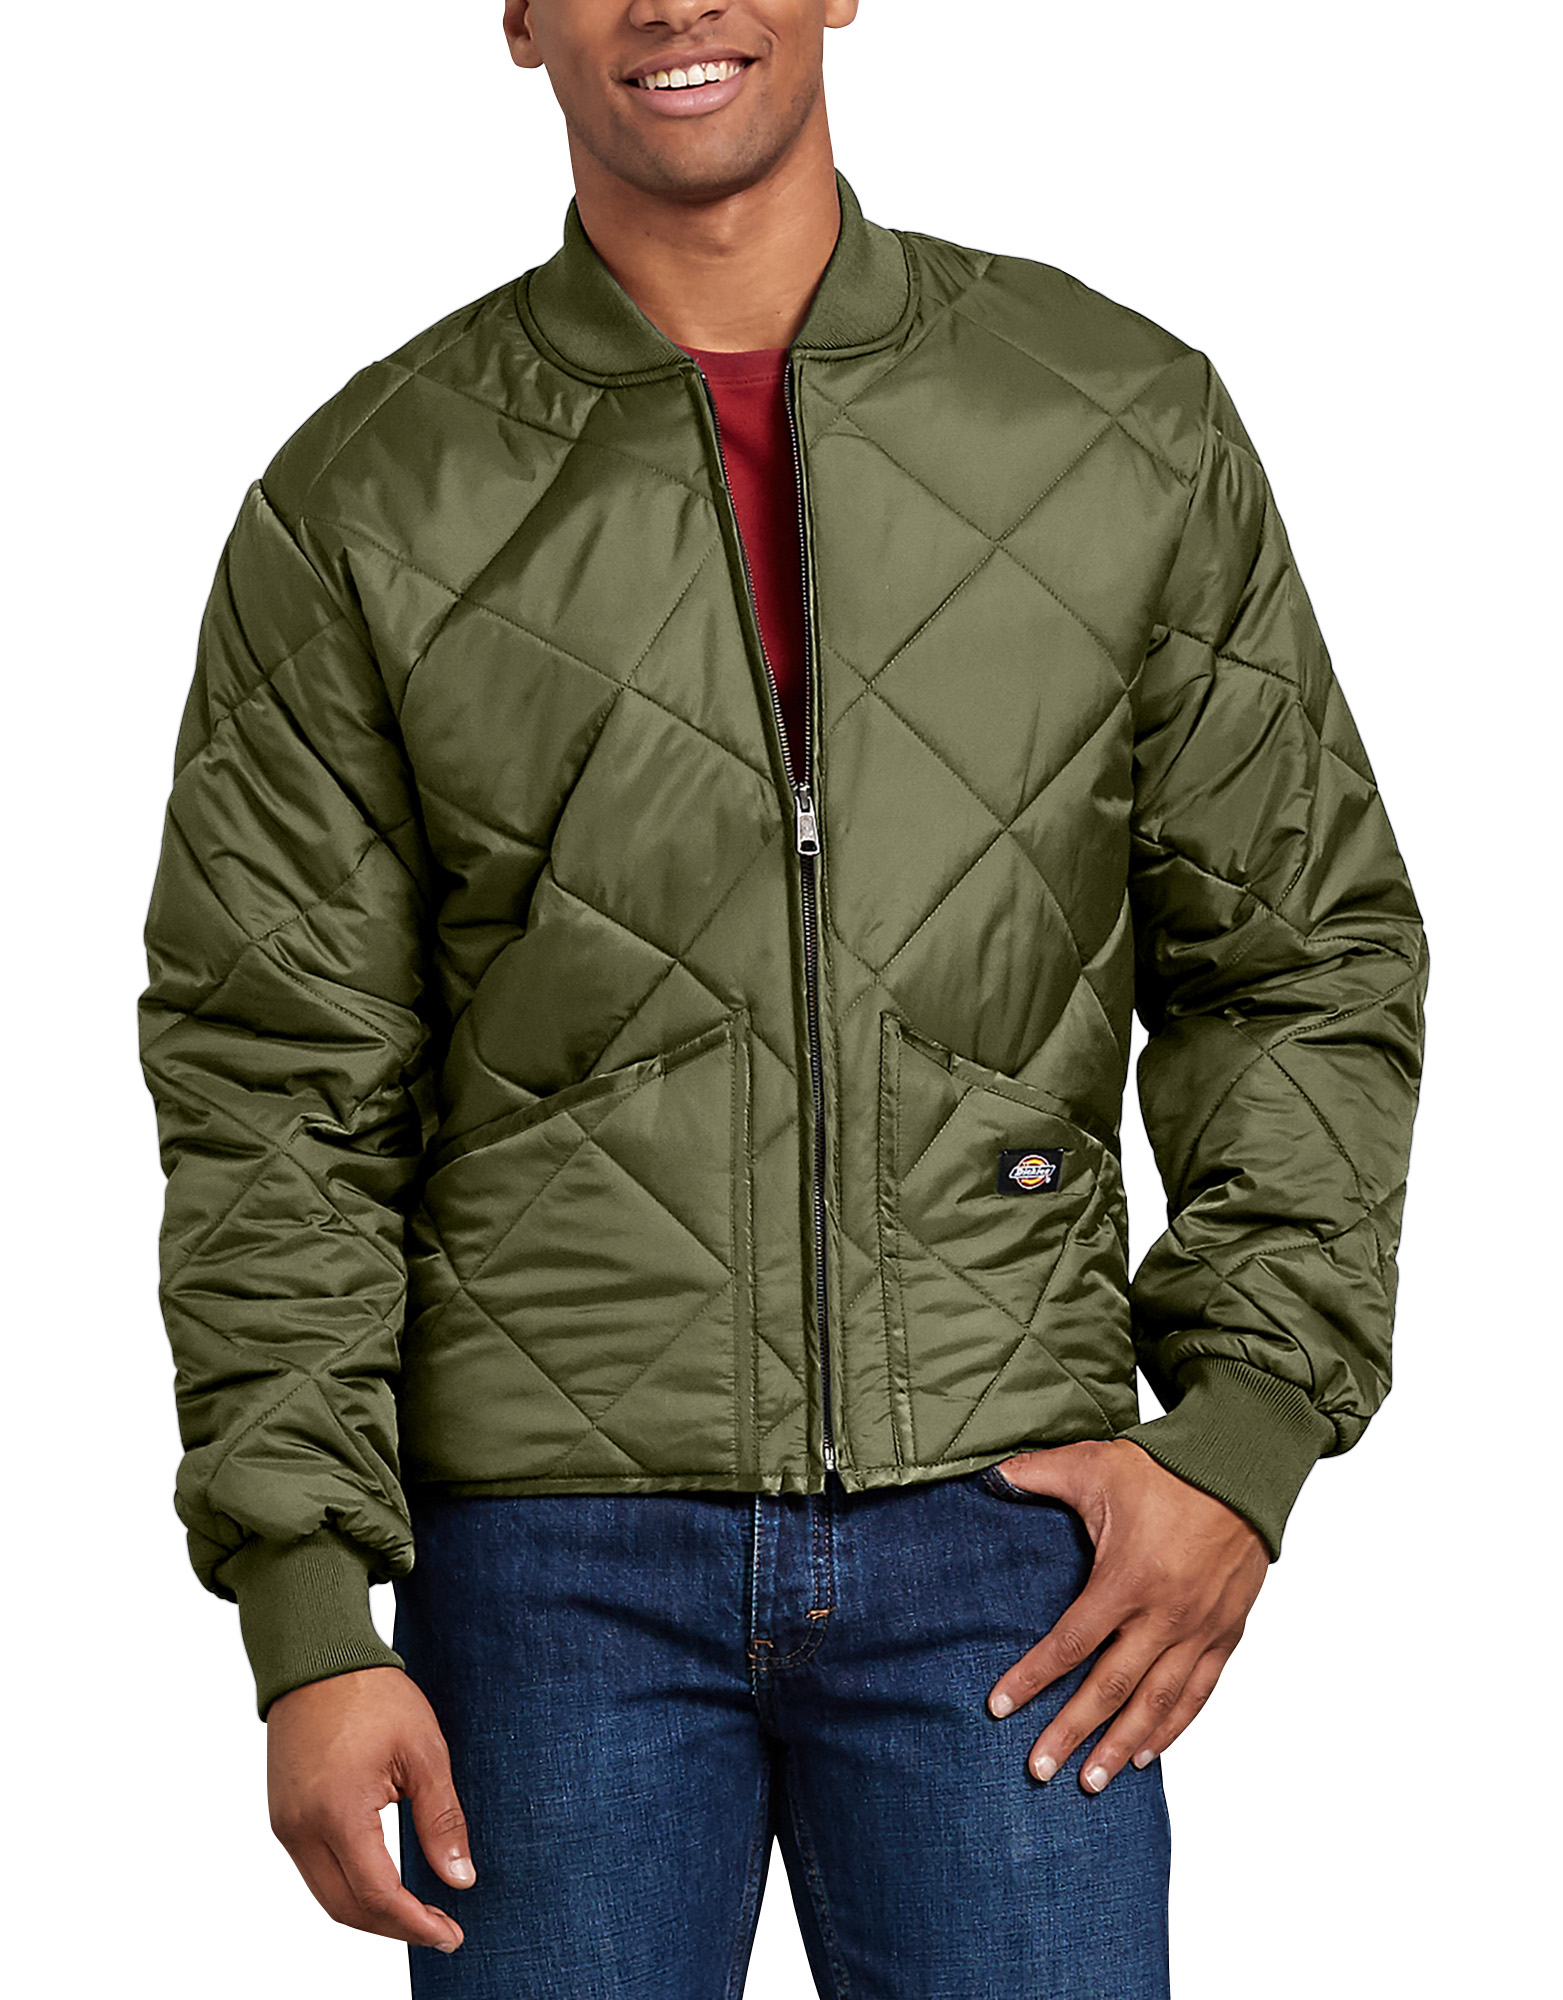 Diamond Quilted Nylon Jacket - Olive Branch (VC)